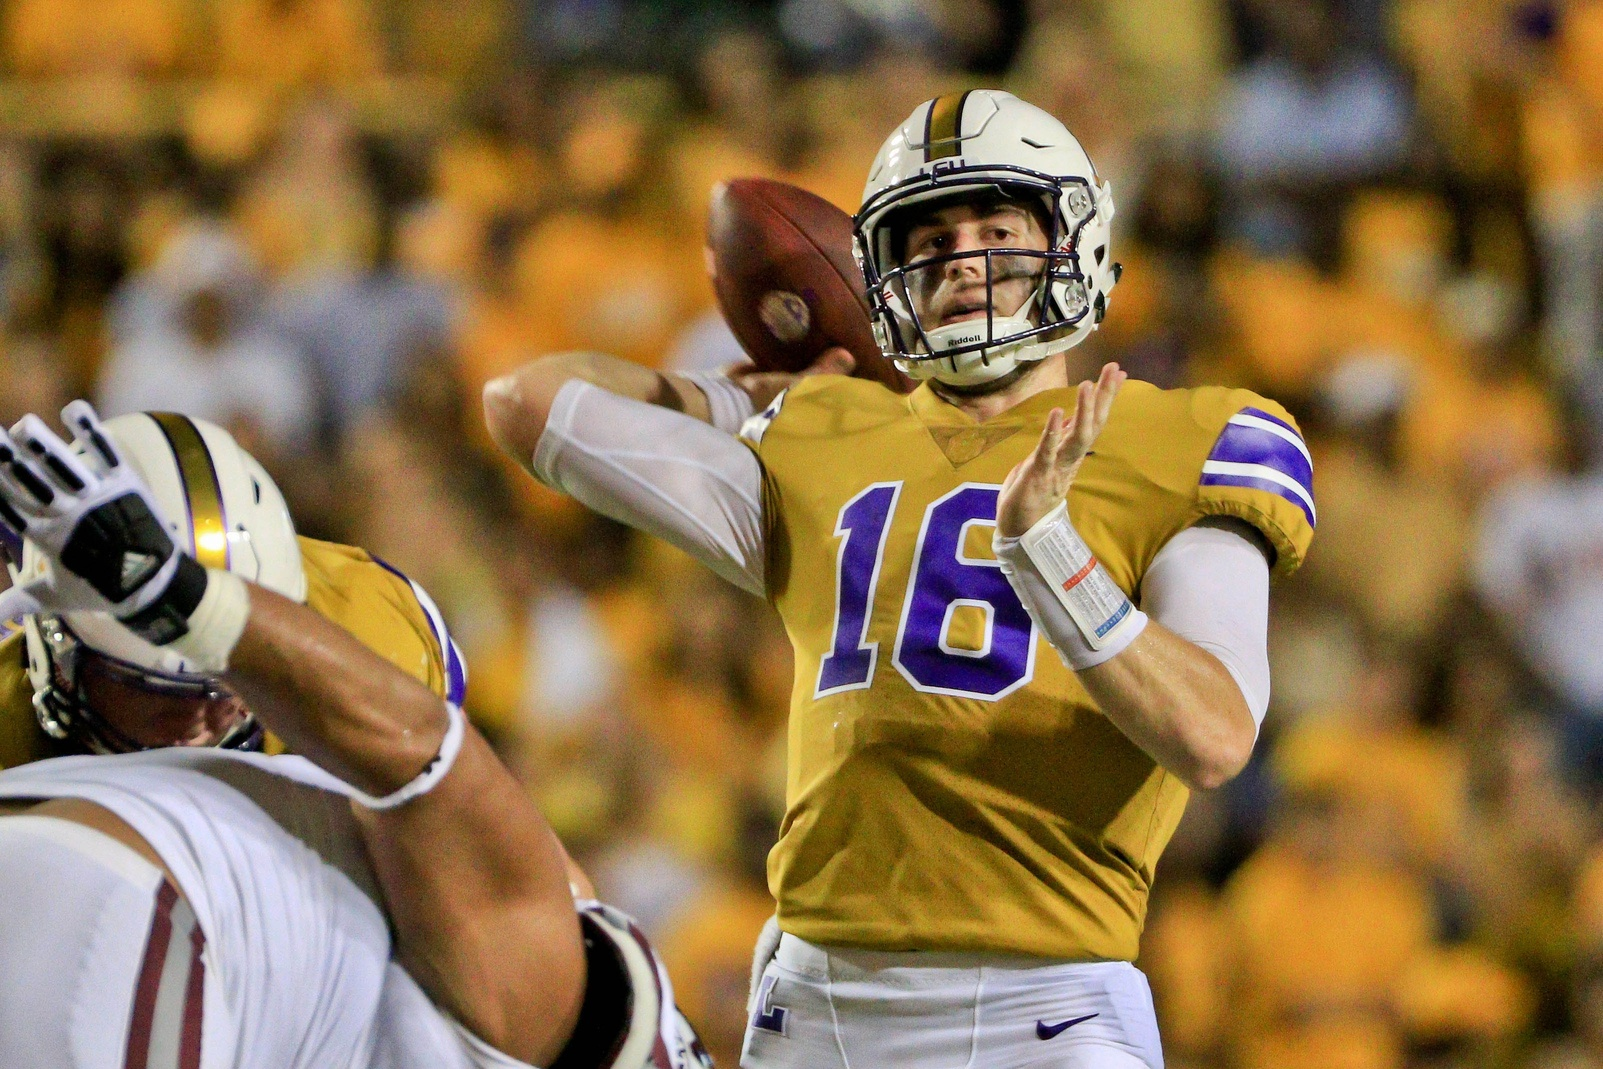 Sep 17, 2016; Baton Rouge, LA, USA; LSU Tigers quarterback Danny Etling (16) throws a pass against the Mississippi State Bulldogs during the second quarter of a game at Tiger Stadium. Mandatory Credit: Derick E. Hingle-USA TODAY Sports